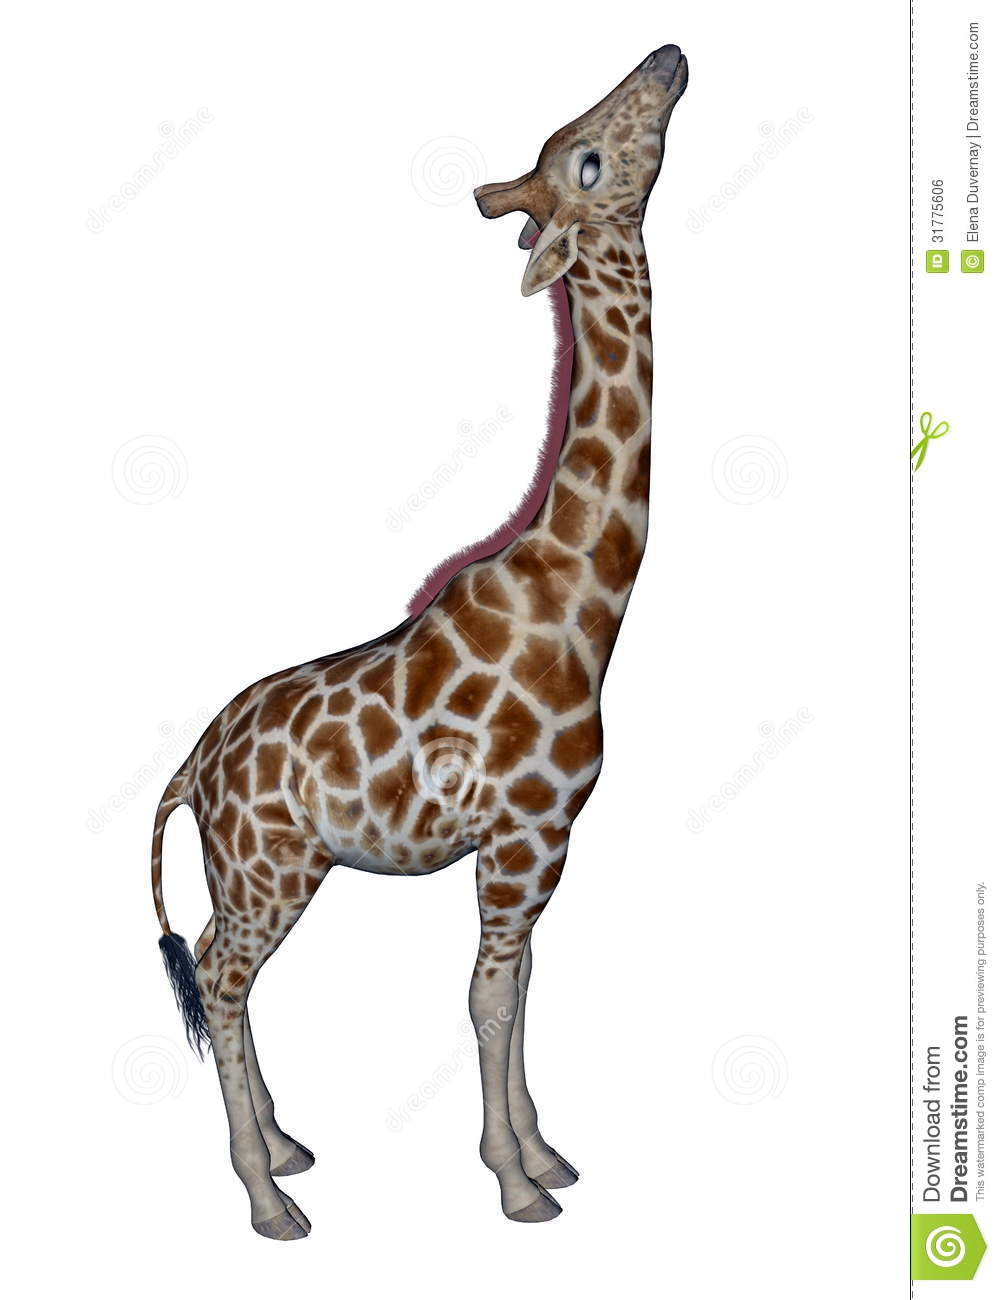 giraffe head white background - photo #18